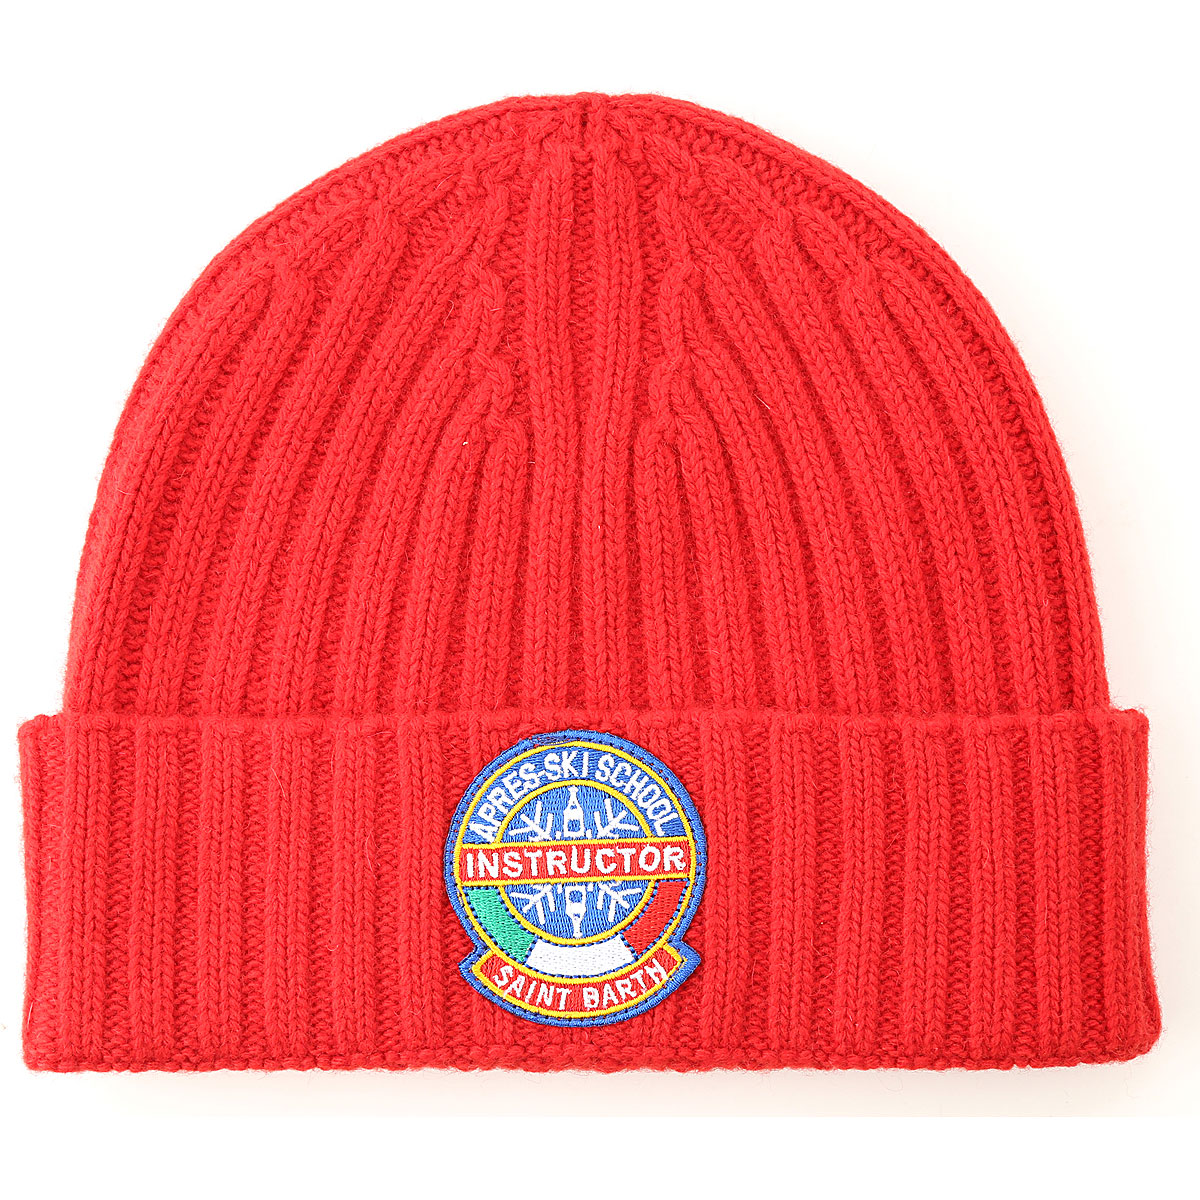 Mc2 Saint Barth Hat for Women, Red, Wool, 2019